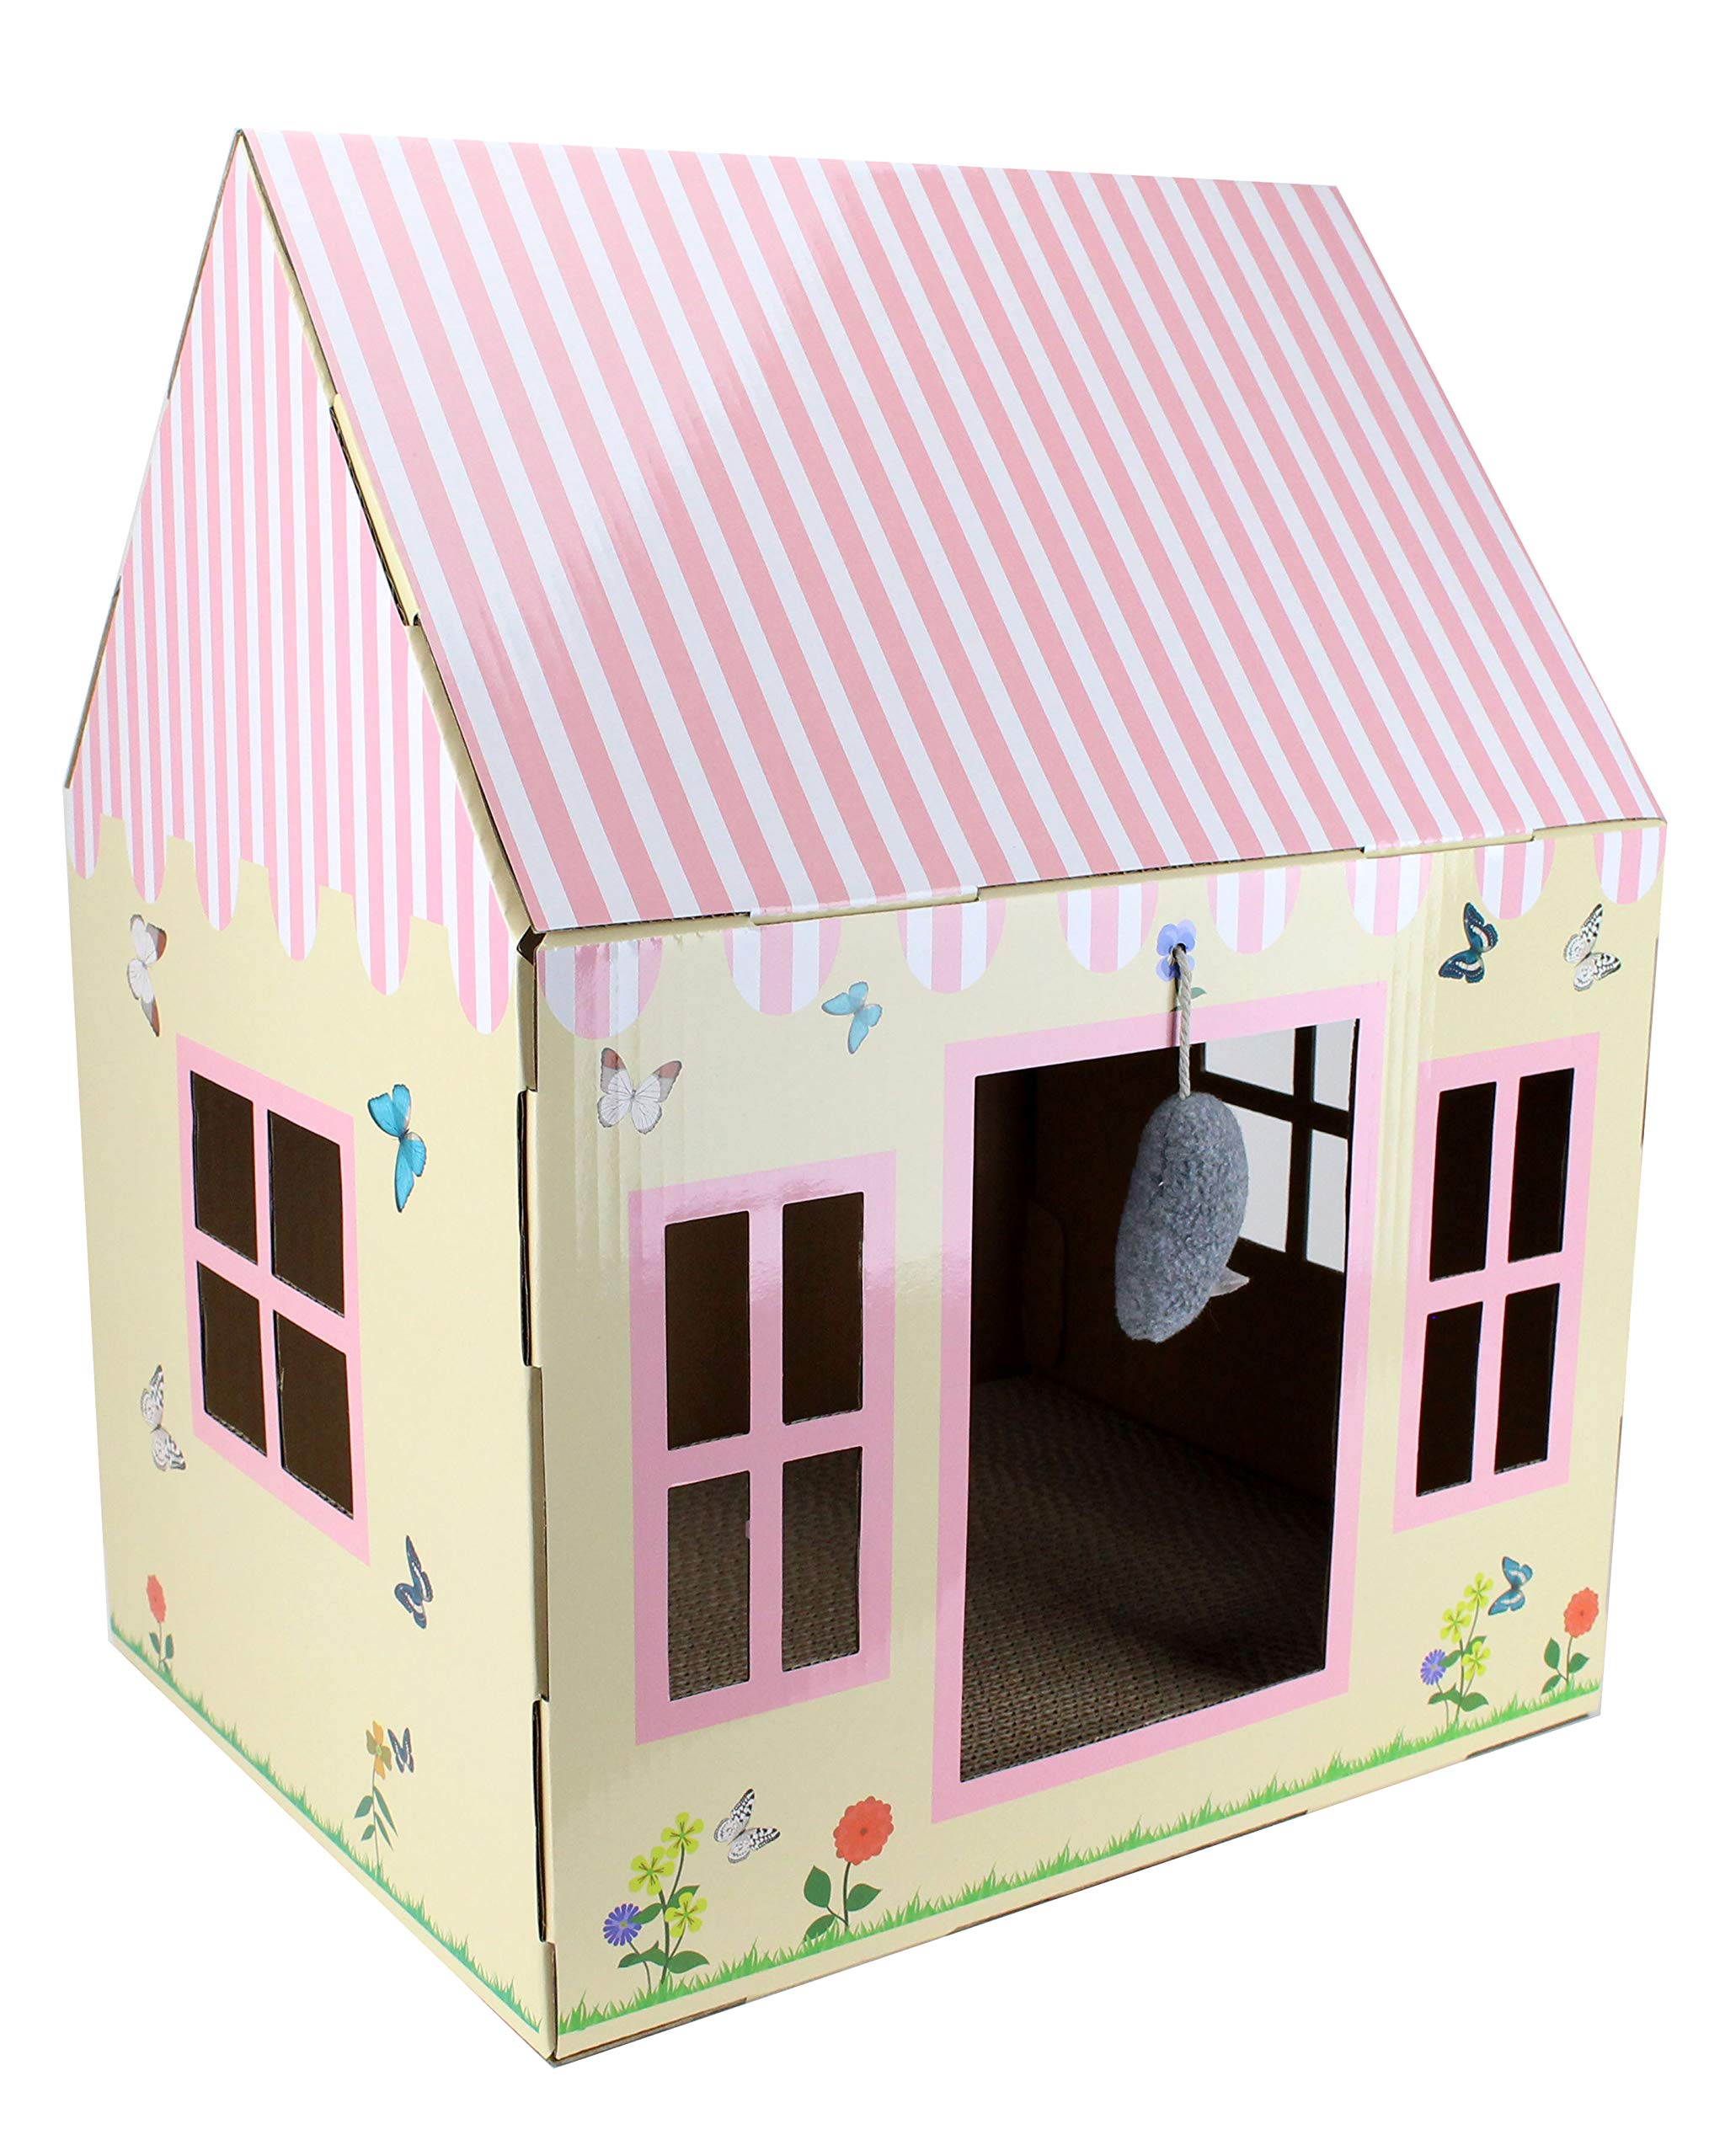 Cottage Cat Scratcher House - Cardboard Box with Scratch Pad, Hanging Toy and Catnip - Best Kitty Indoor Scratching Corner with 4 Window Holes - Cozy and Stimulating Designs - 20 x 16 x 13 Inch by Midlee